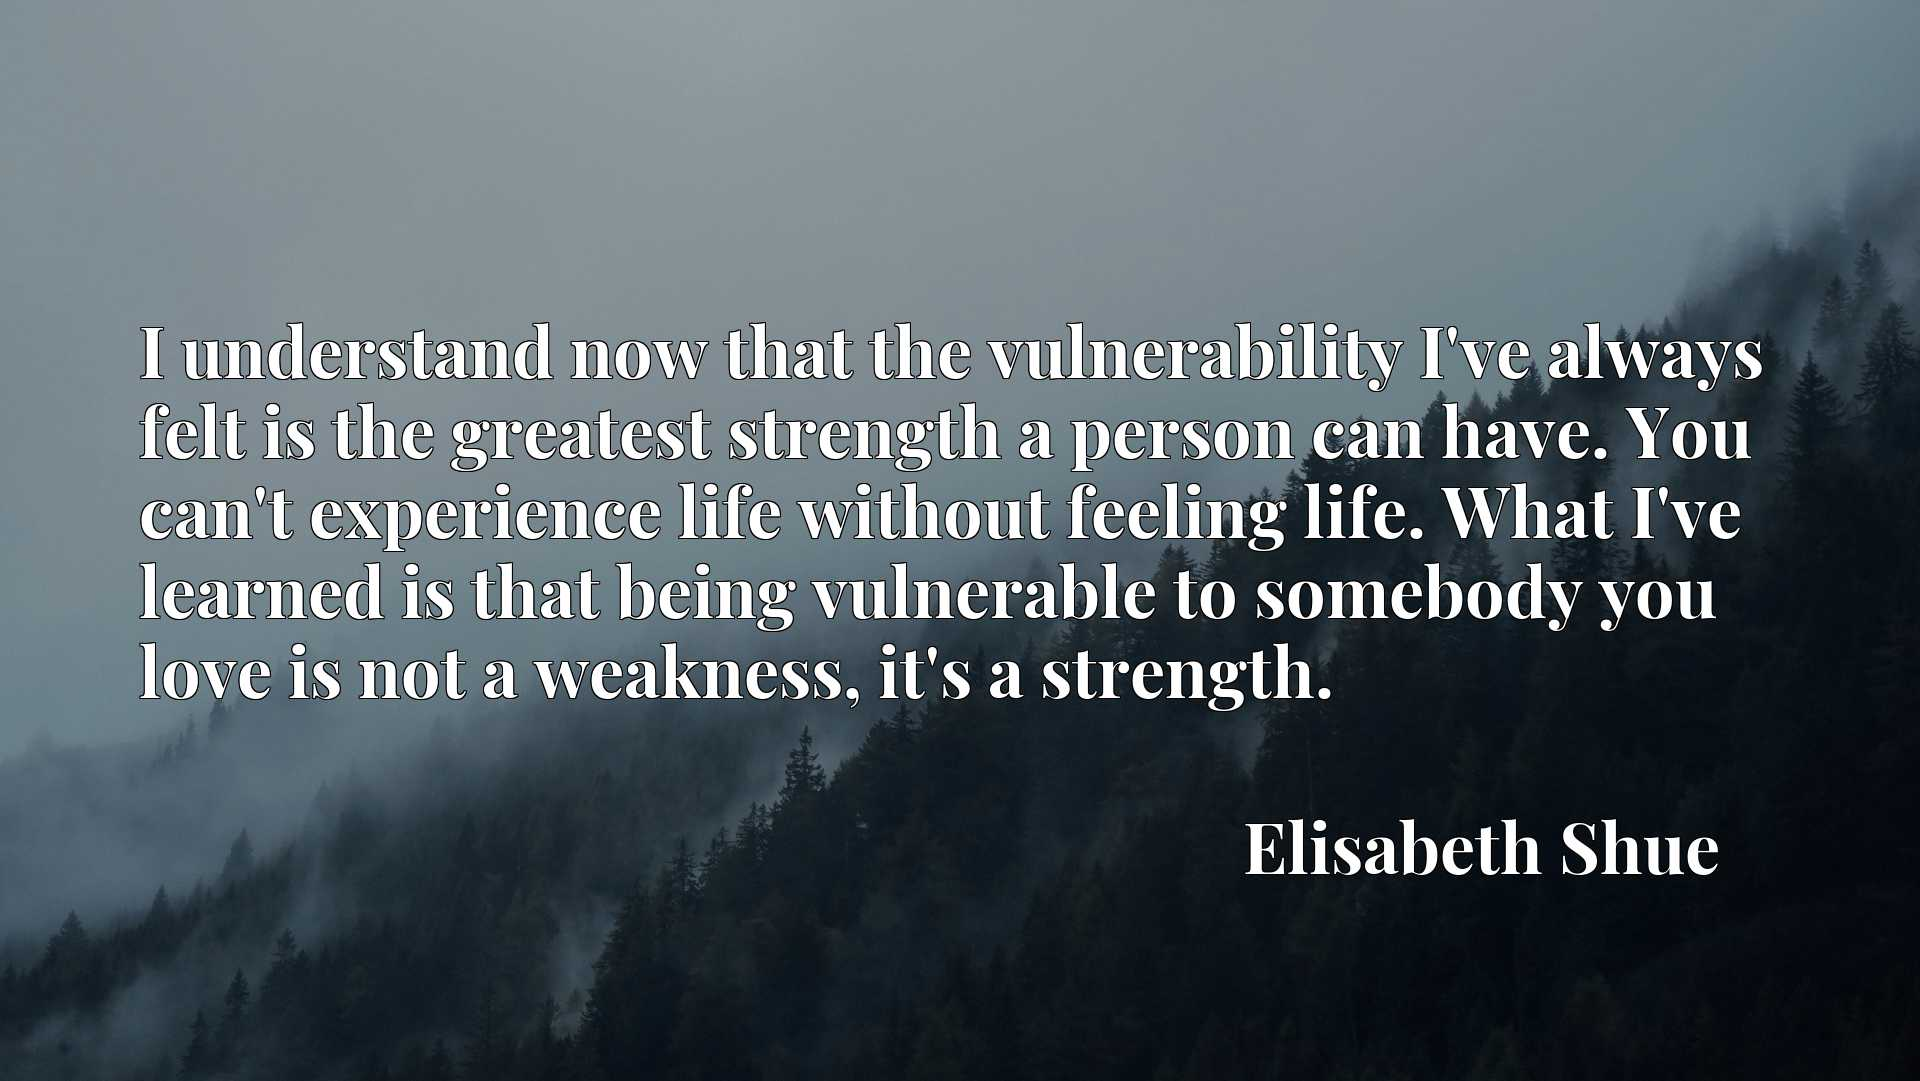 I understand now that the vulnerability I've always felt is the greatest strength a person can have. You can't experience life without feeling life. What I've learned is that being vulnerable to somebody you love is not a weakness, it's a strength.